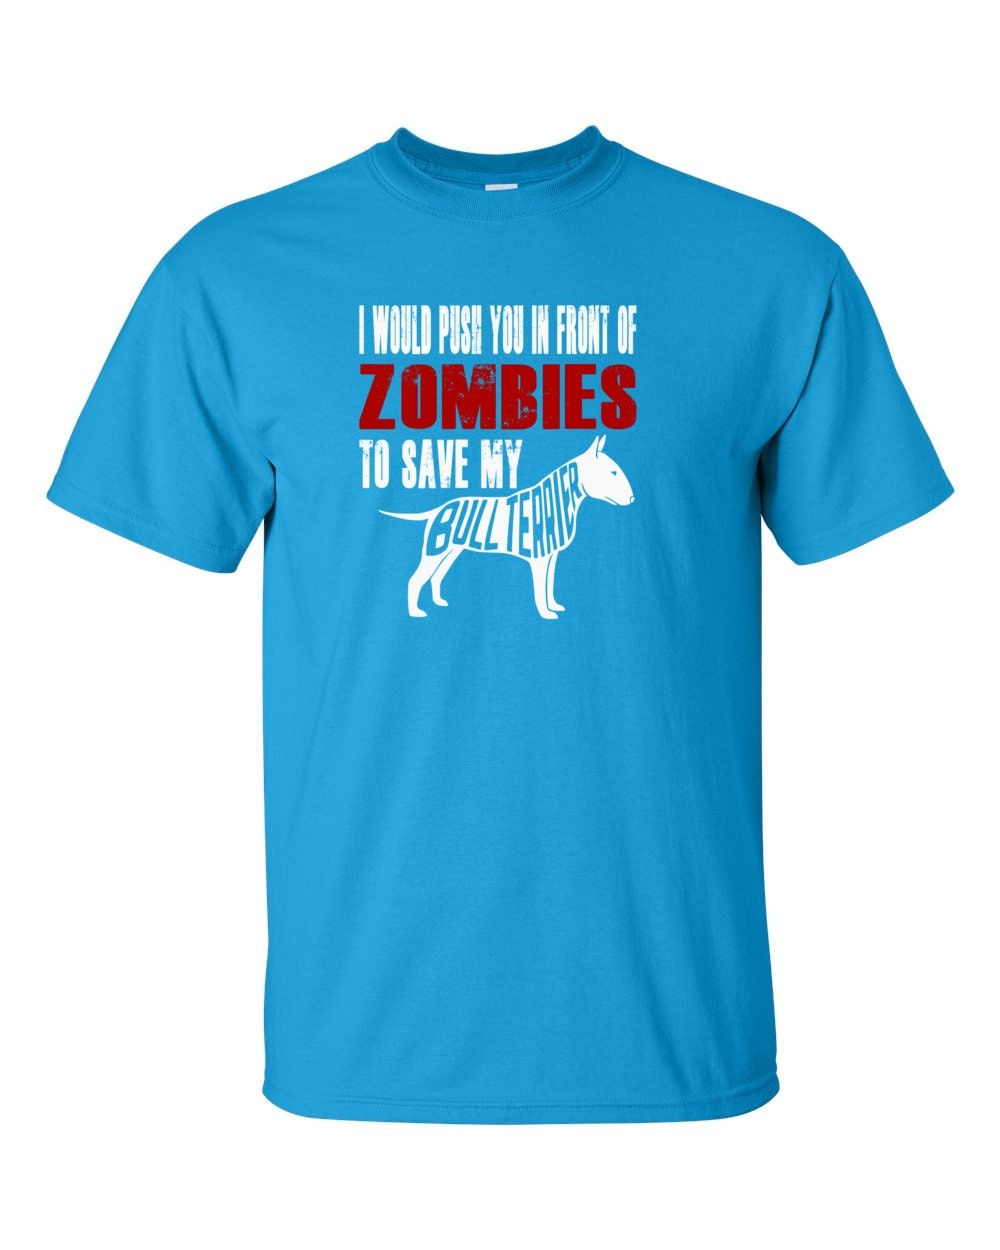 Bull Terrier Shirt - I Would Push You In Front Of Zombies To Save My Bull Terrier T-shirt